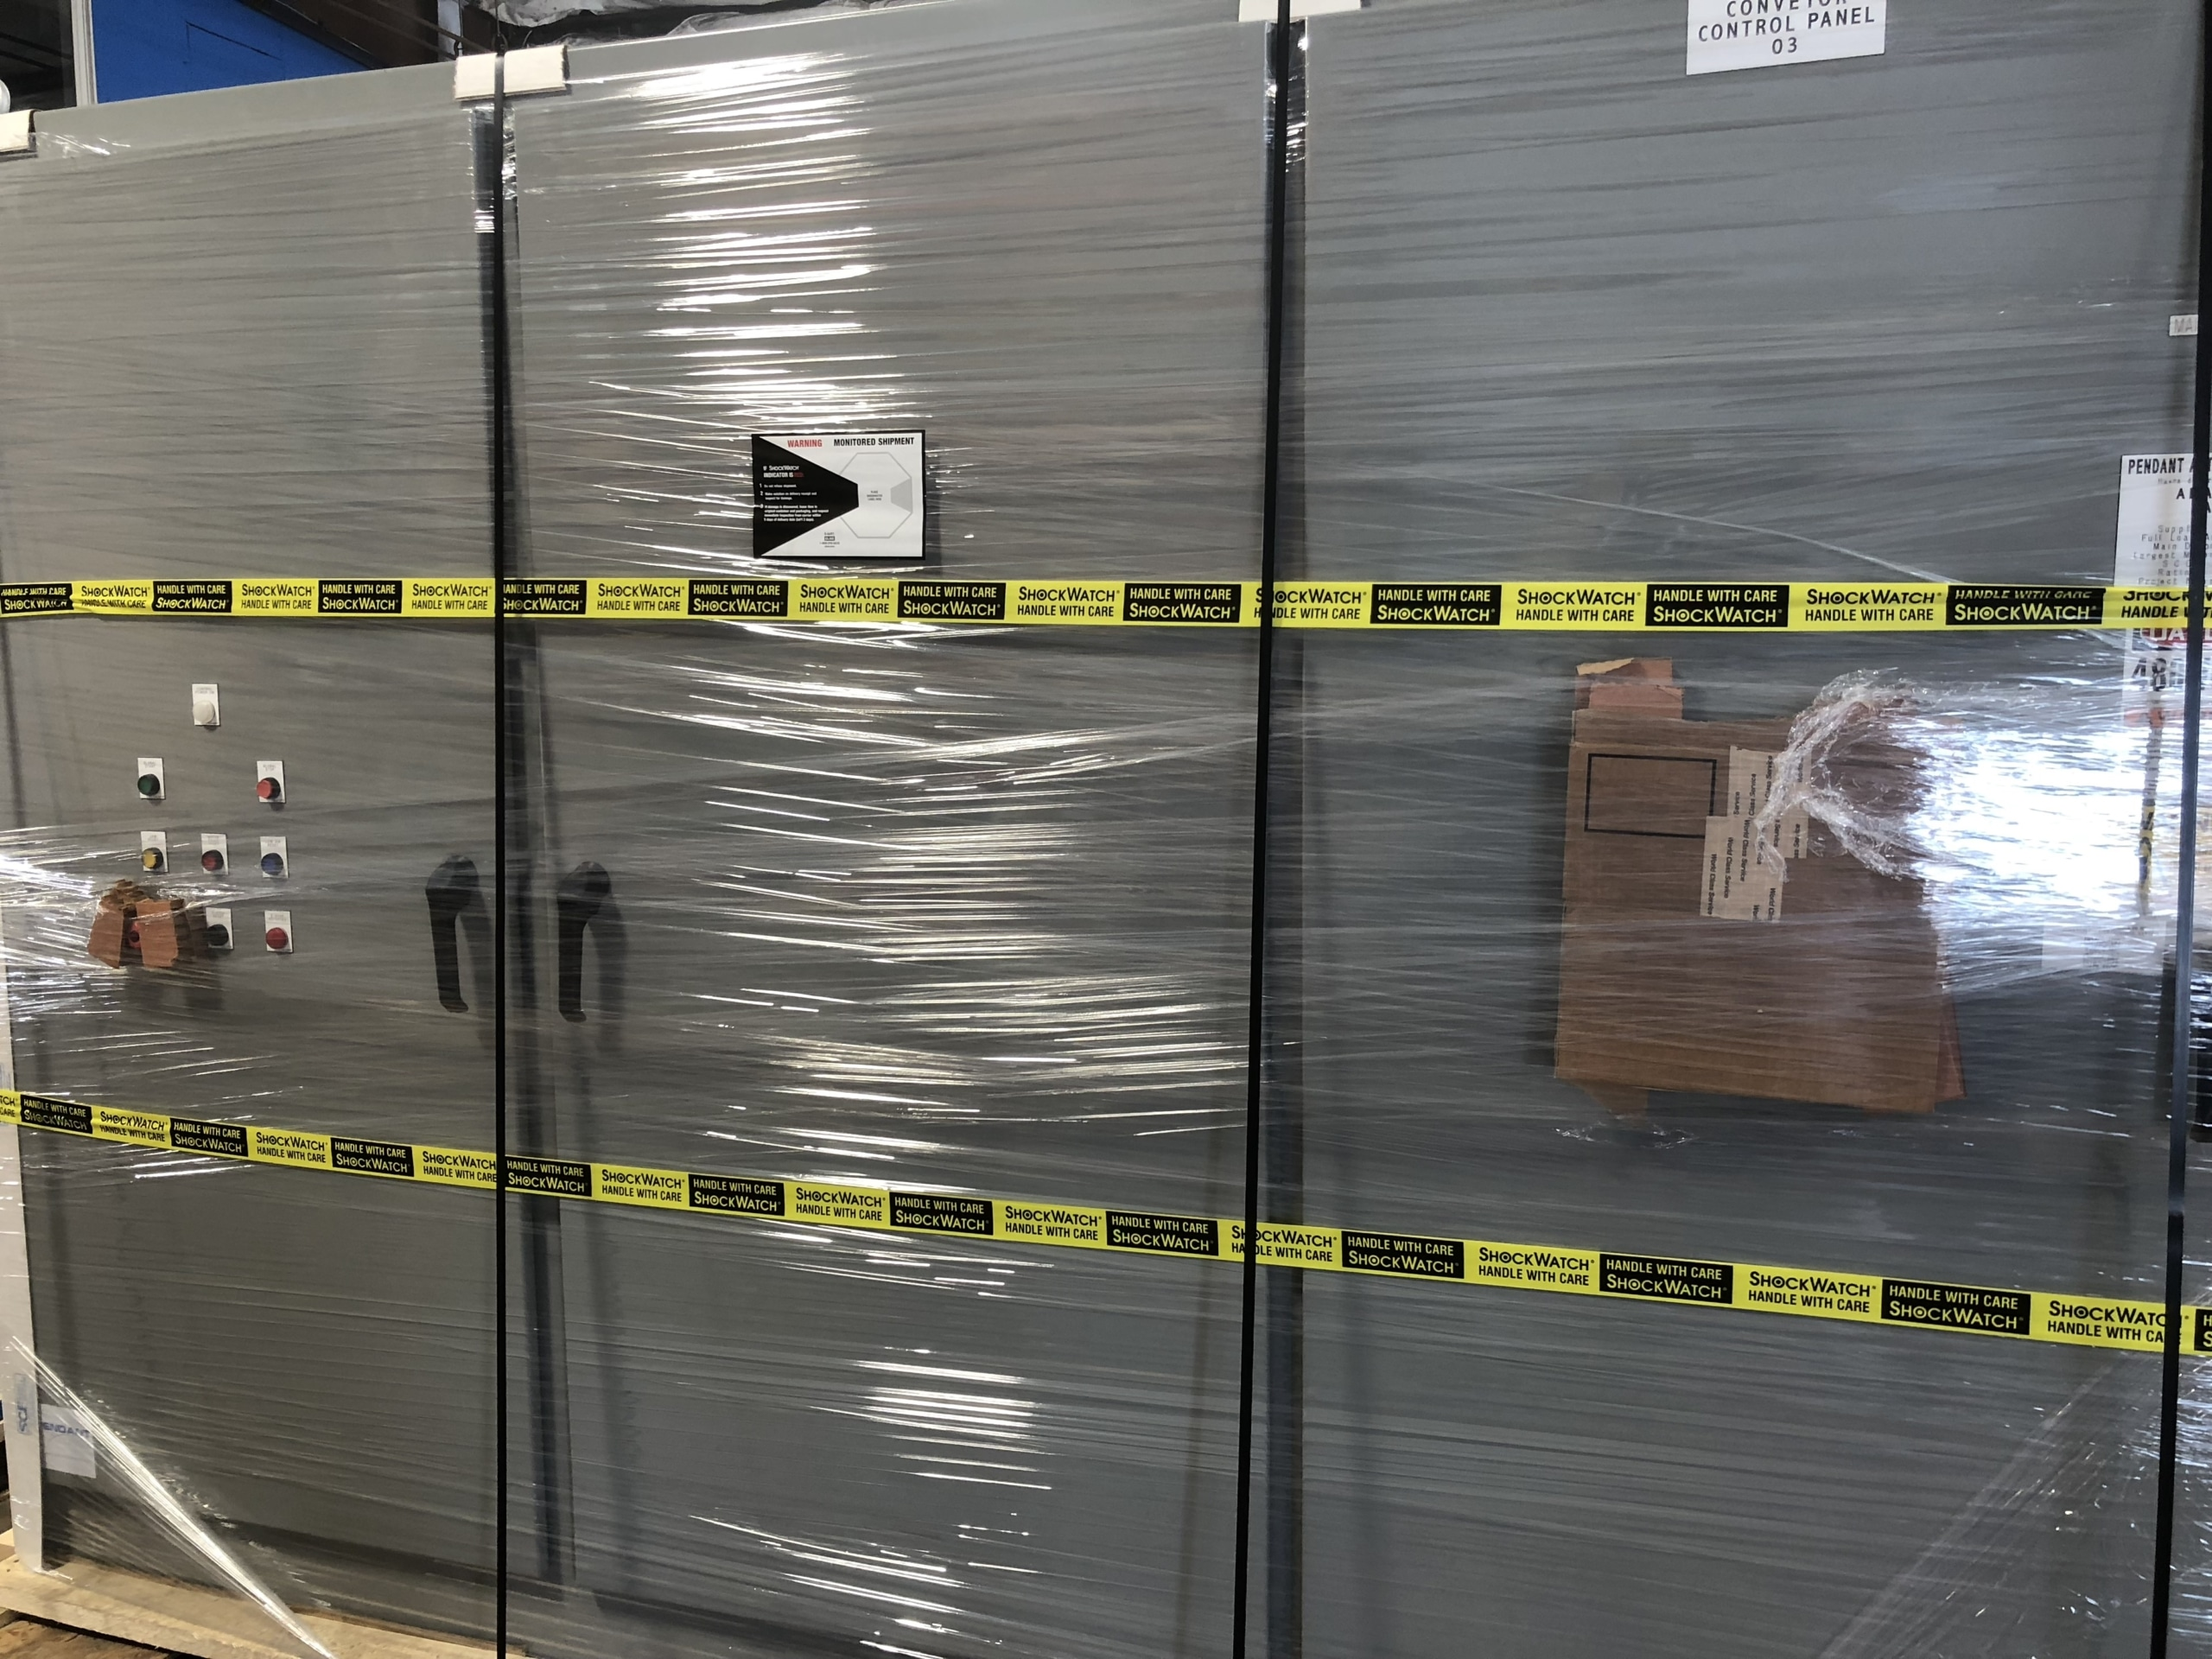 Control panel shipping